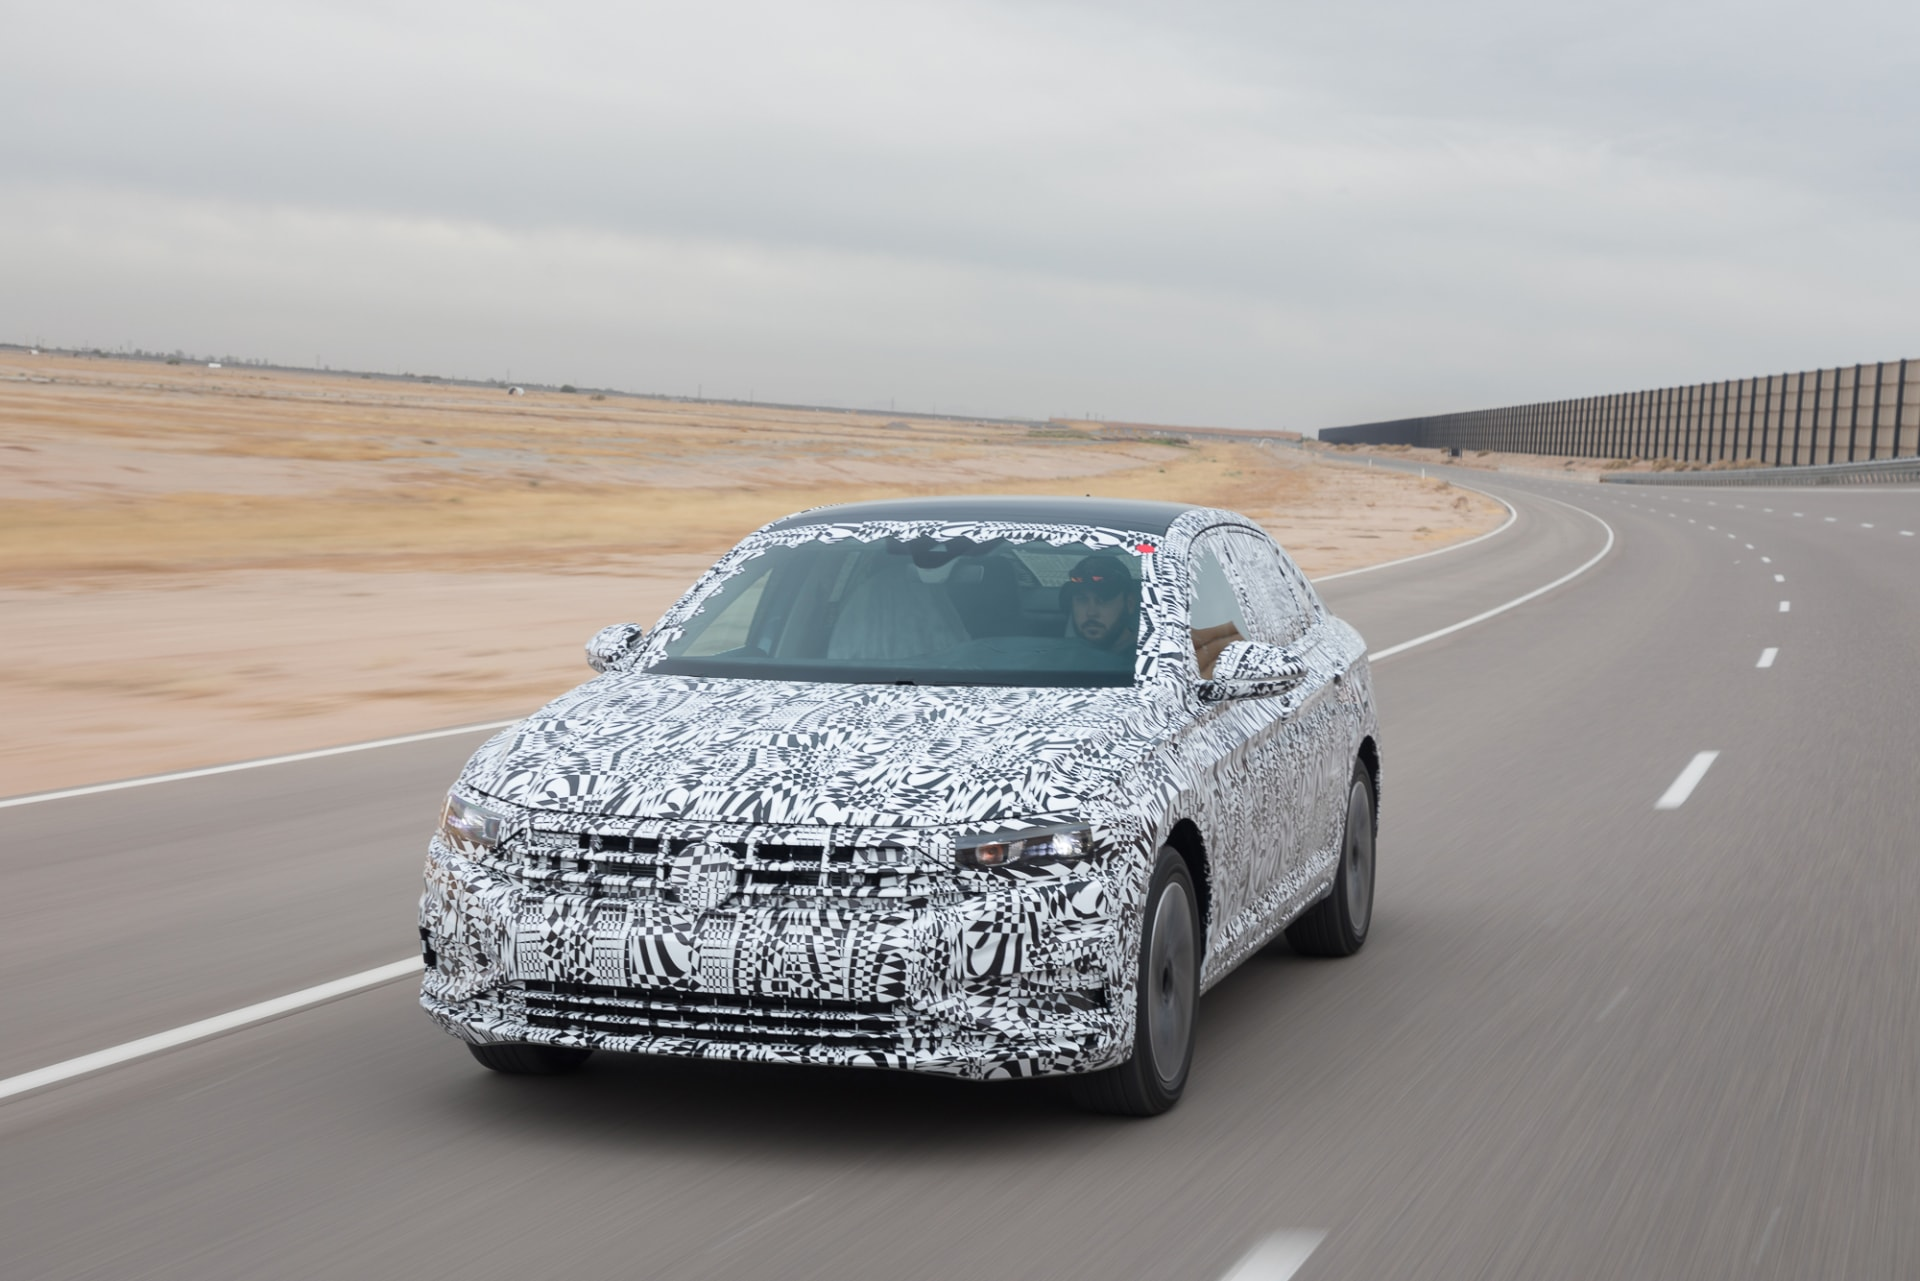 There's a New 2019 Volkswagen Jetta Coming, and We Drove It